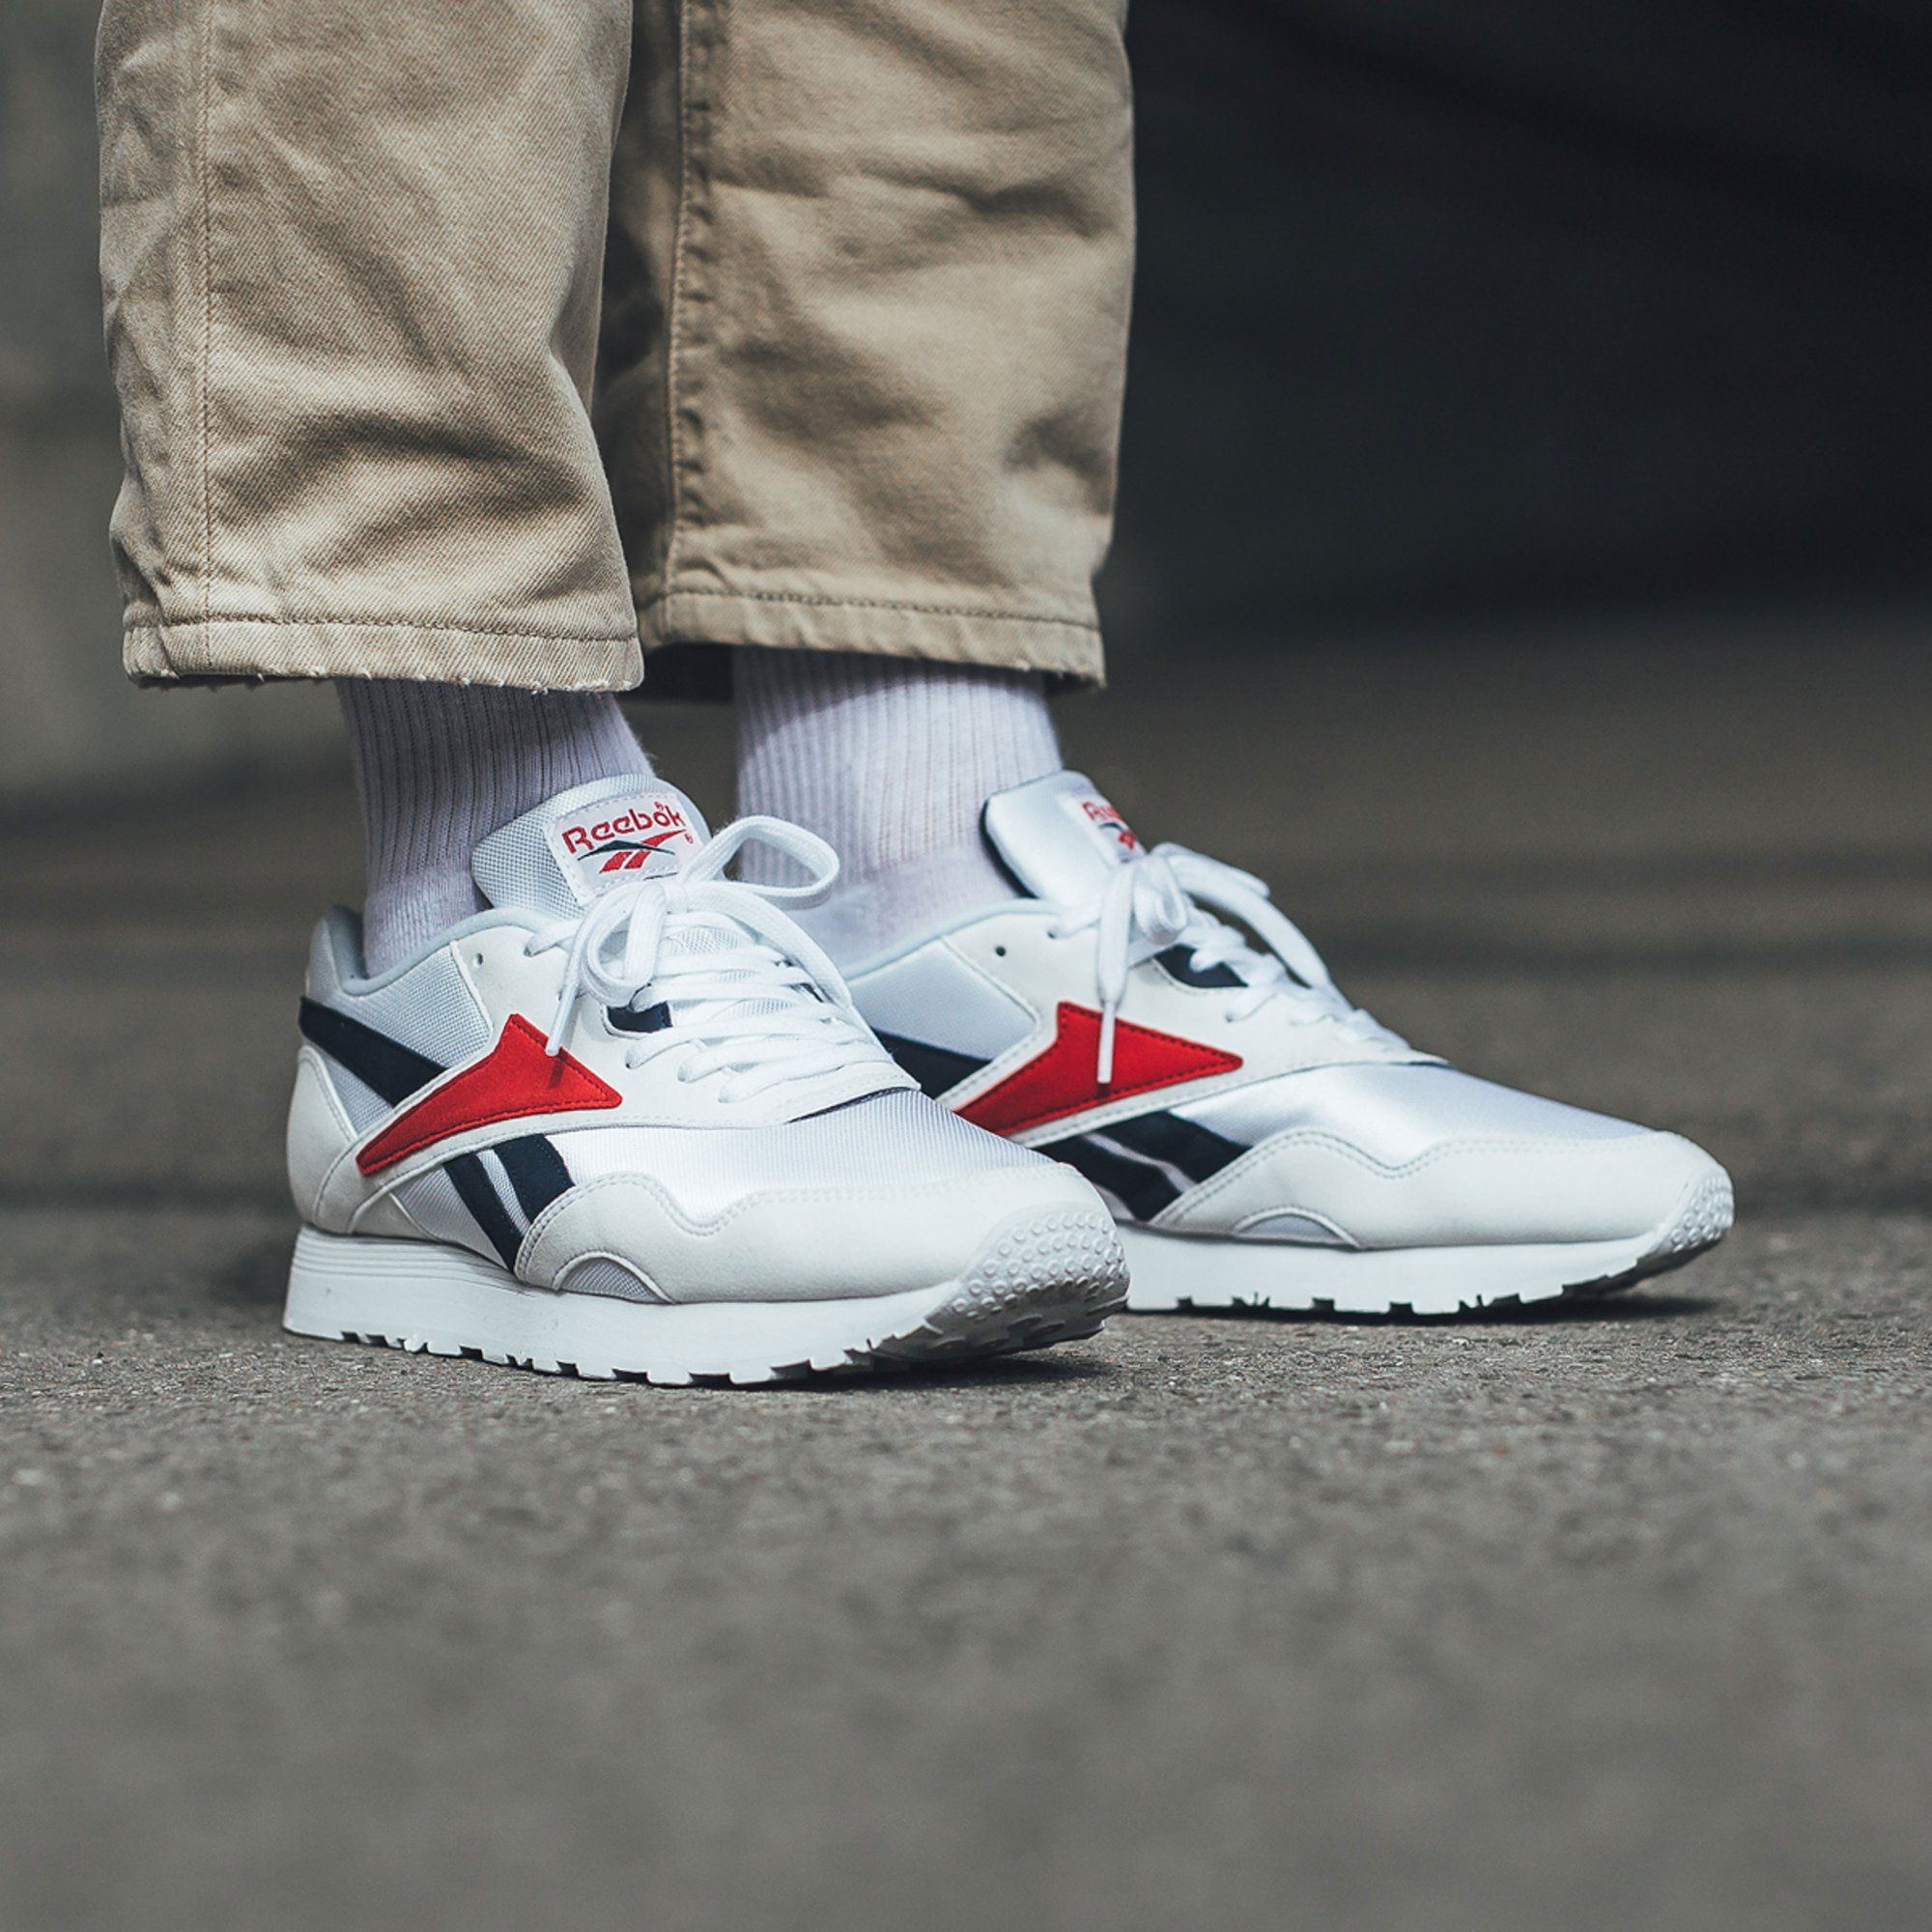 Reebok Rapide OG in 2019 | Shoes sneakers, Shoes, Classic